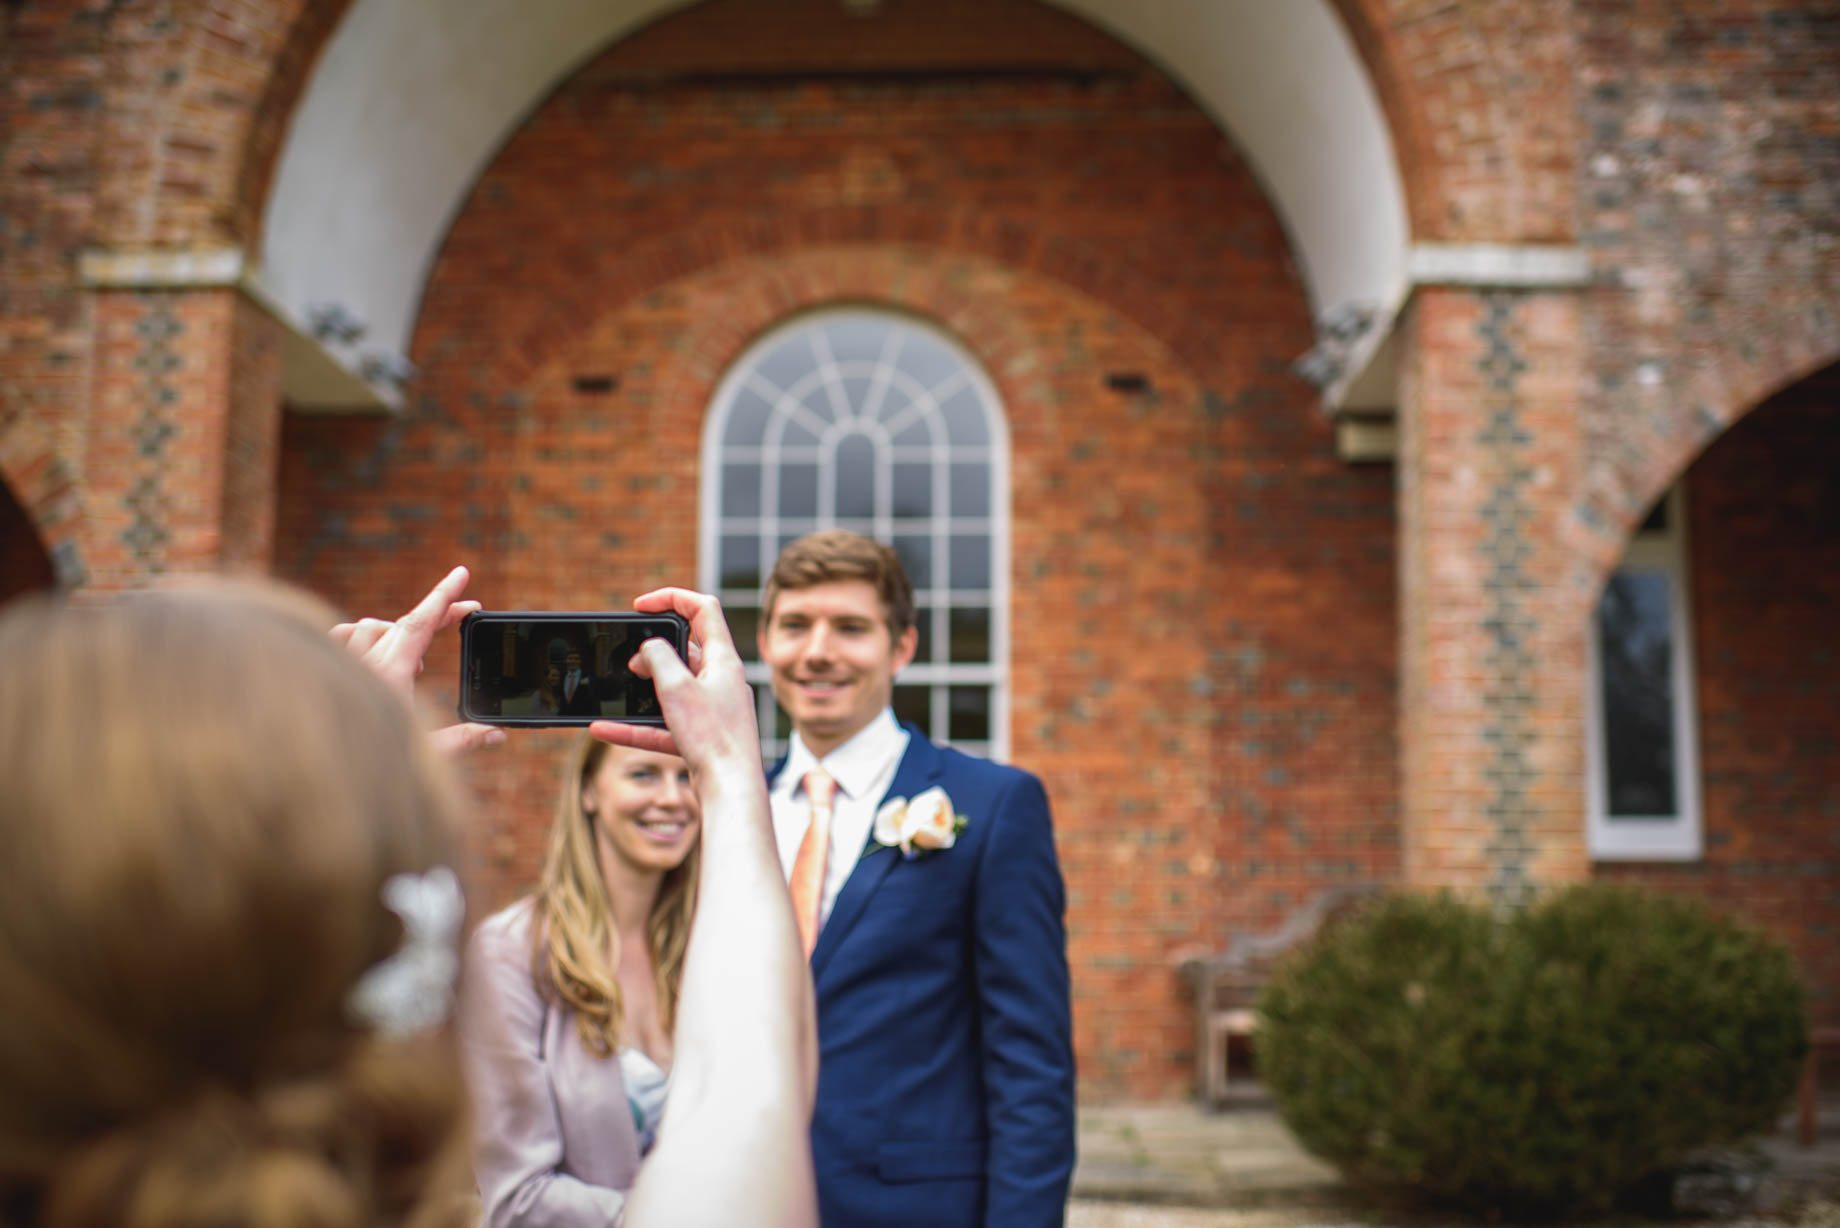 Hampshire wedding photography by Guy Collier - Emily and Tom (96 of 164)